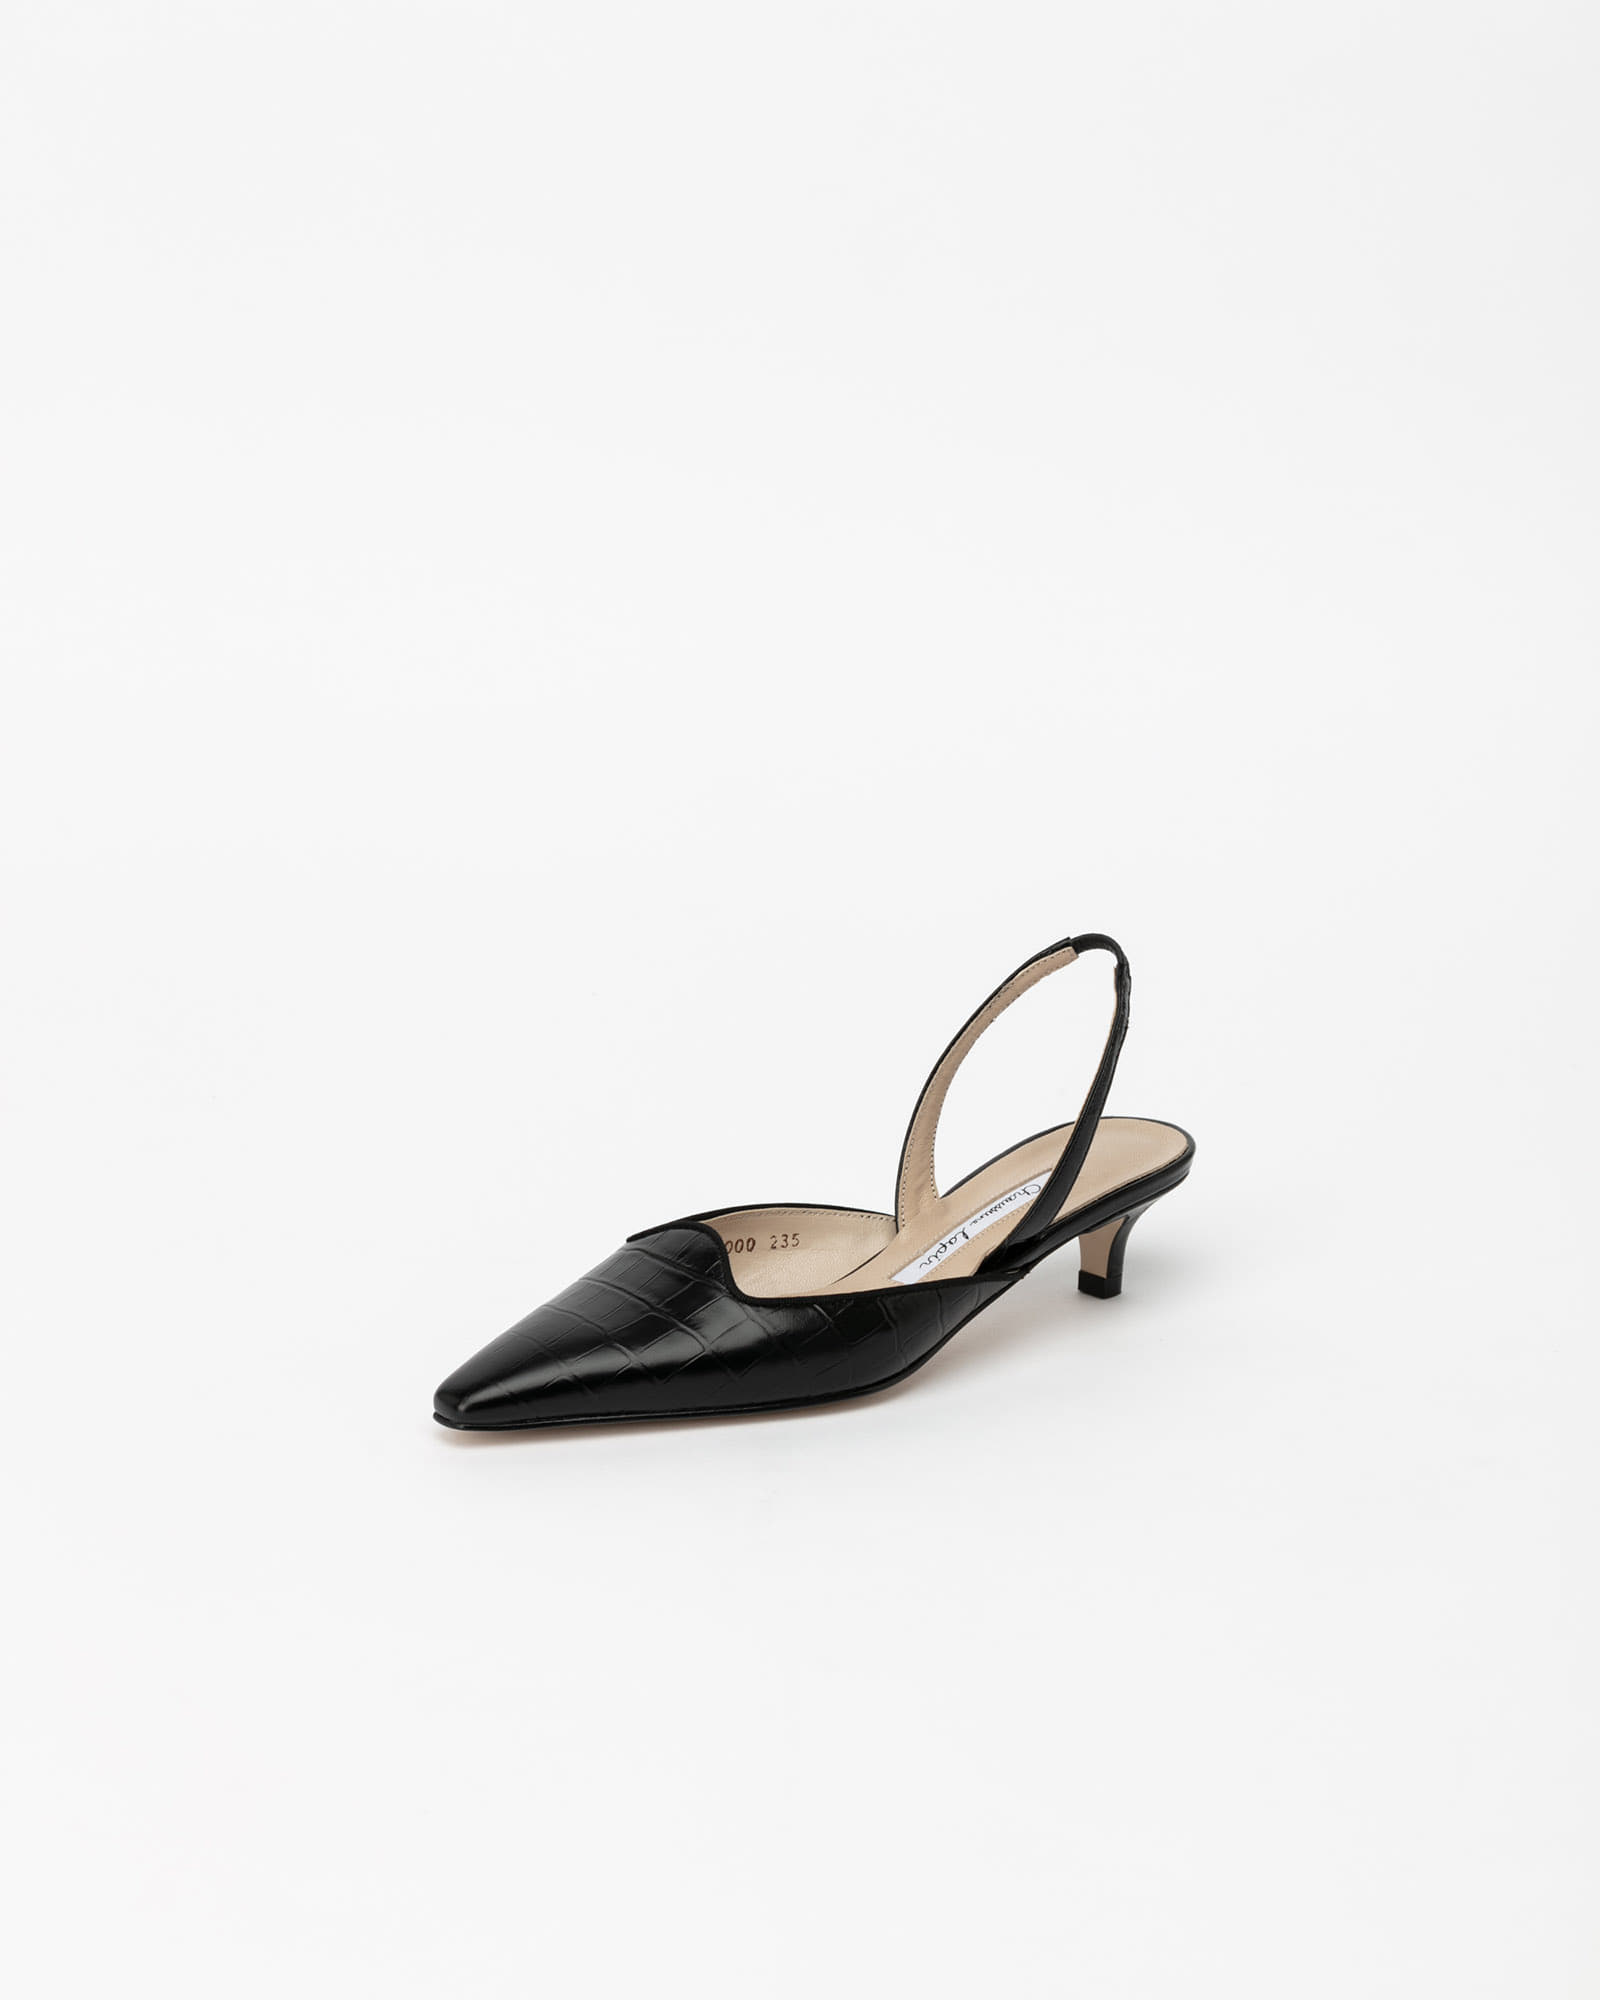 Tanoa Slingbacks in Black Croco Prints